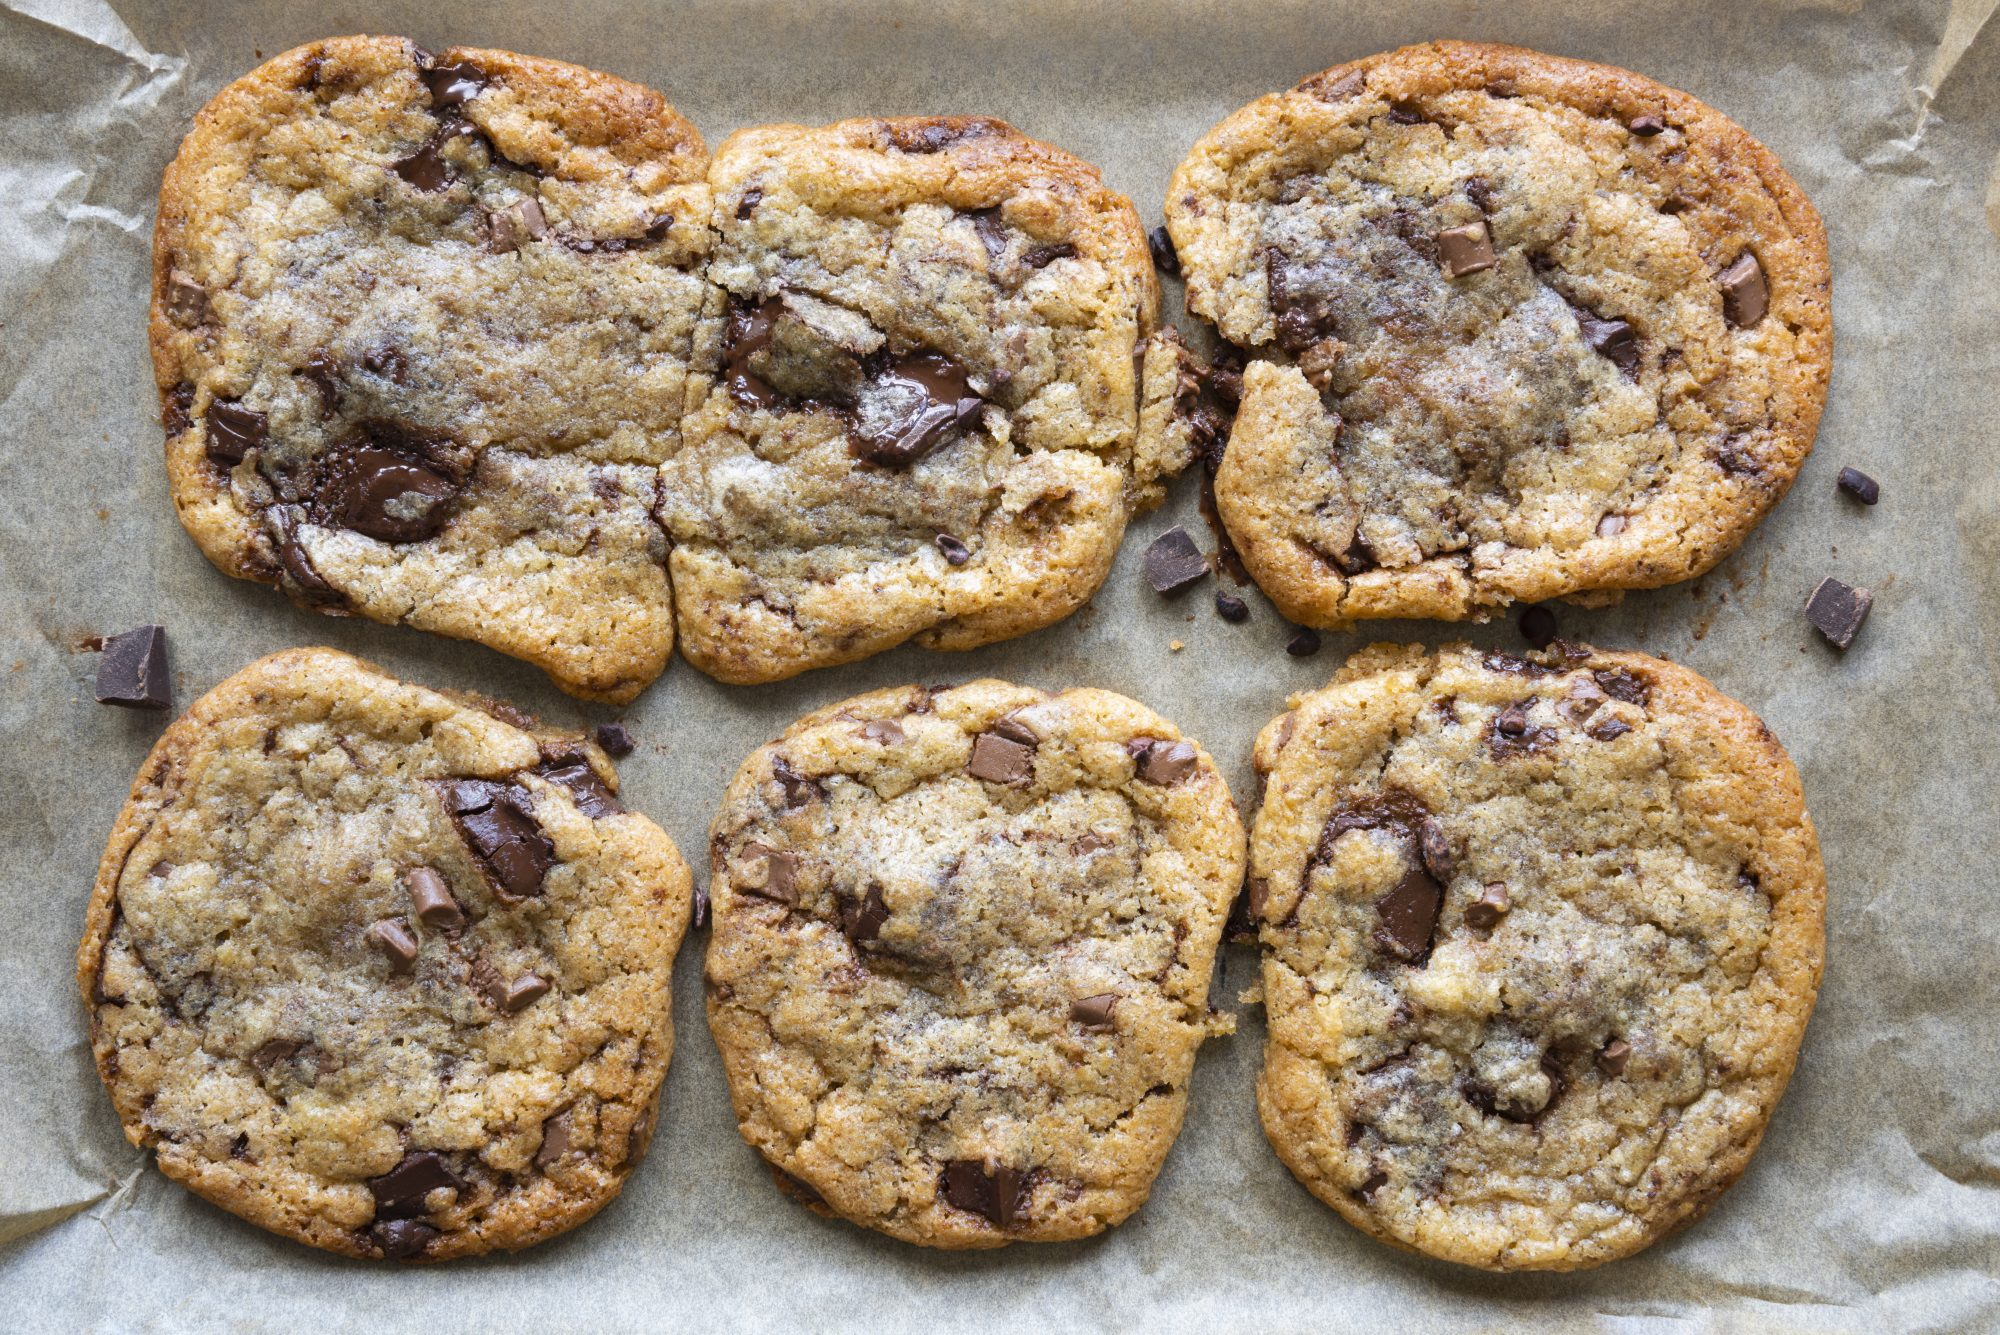 Flat cookies Getty 9/29/20